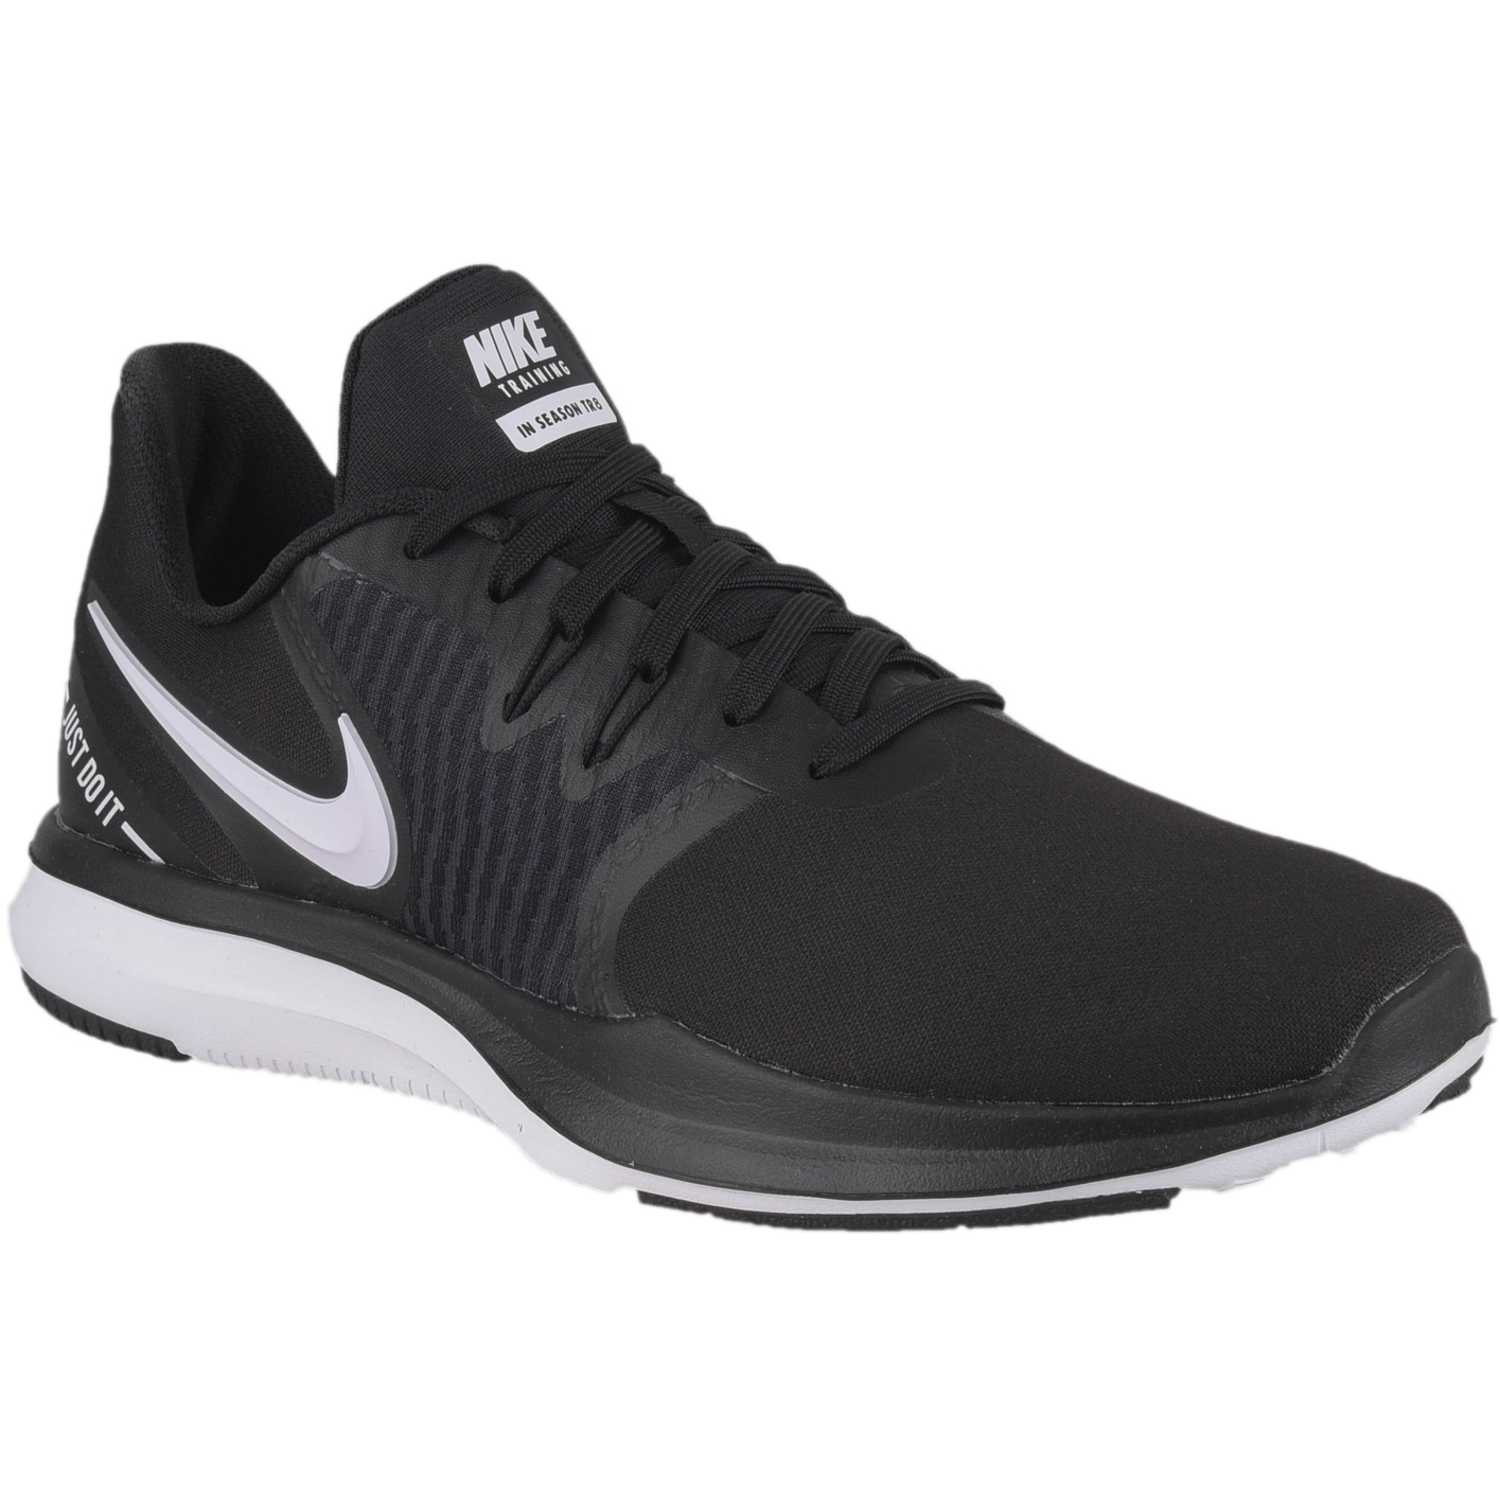 Nike wmns in-season tr 8 Negro /gris Mujeres